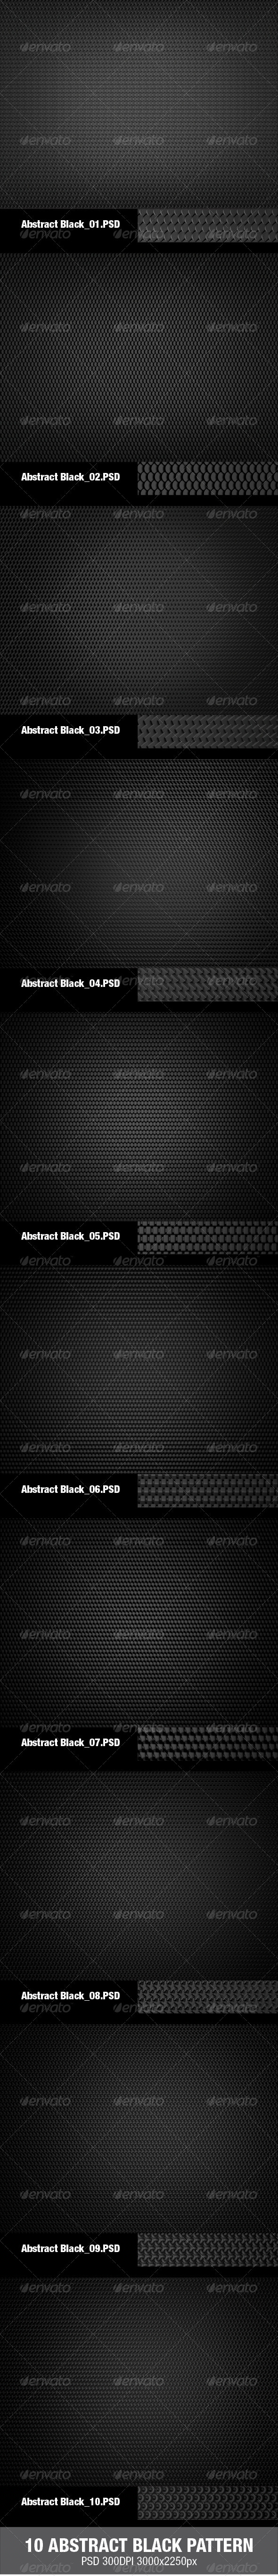 10 Abstract Black Pattern - Abstract Backgrounds